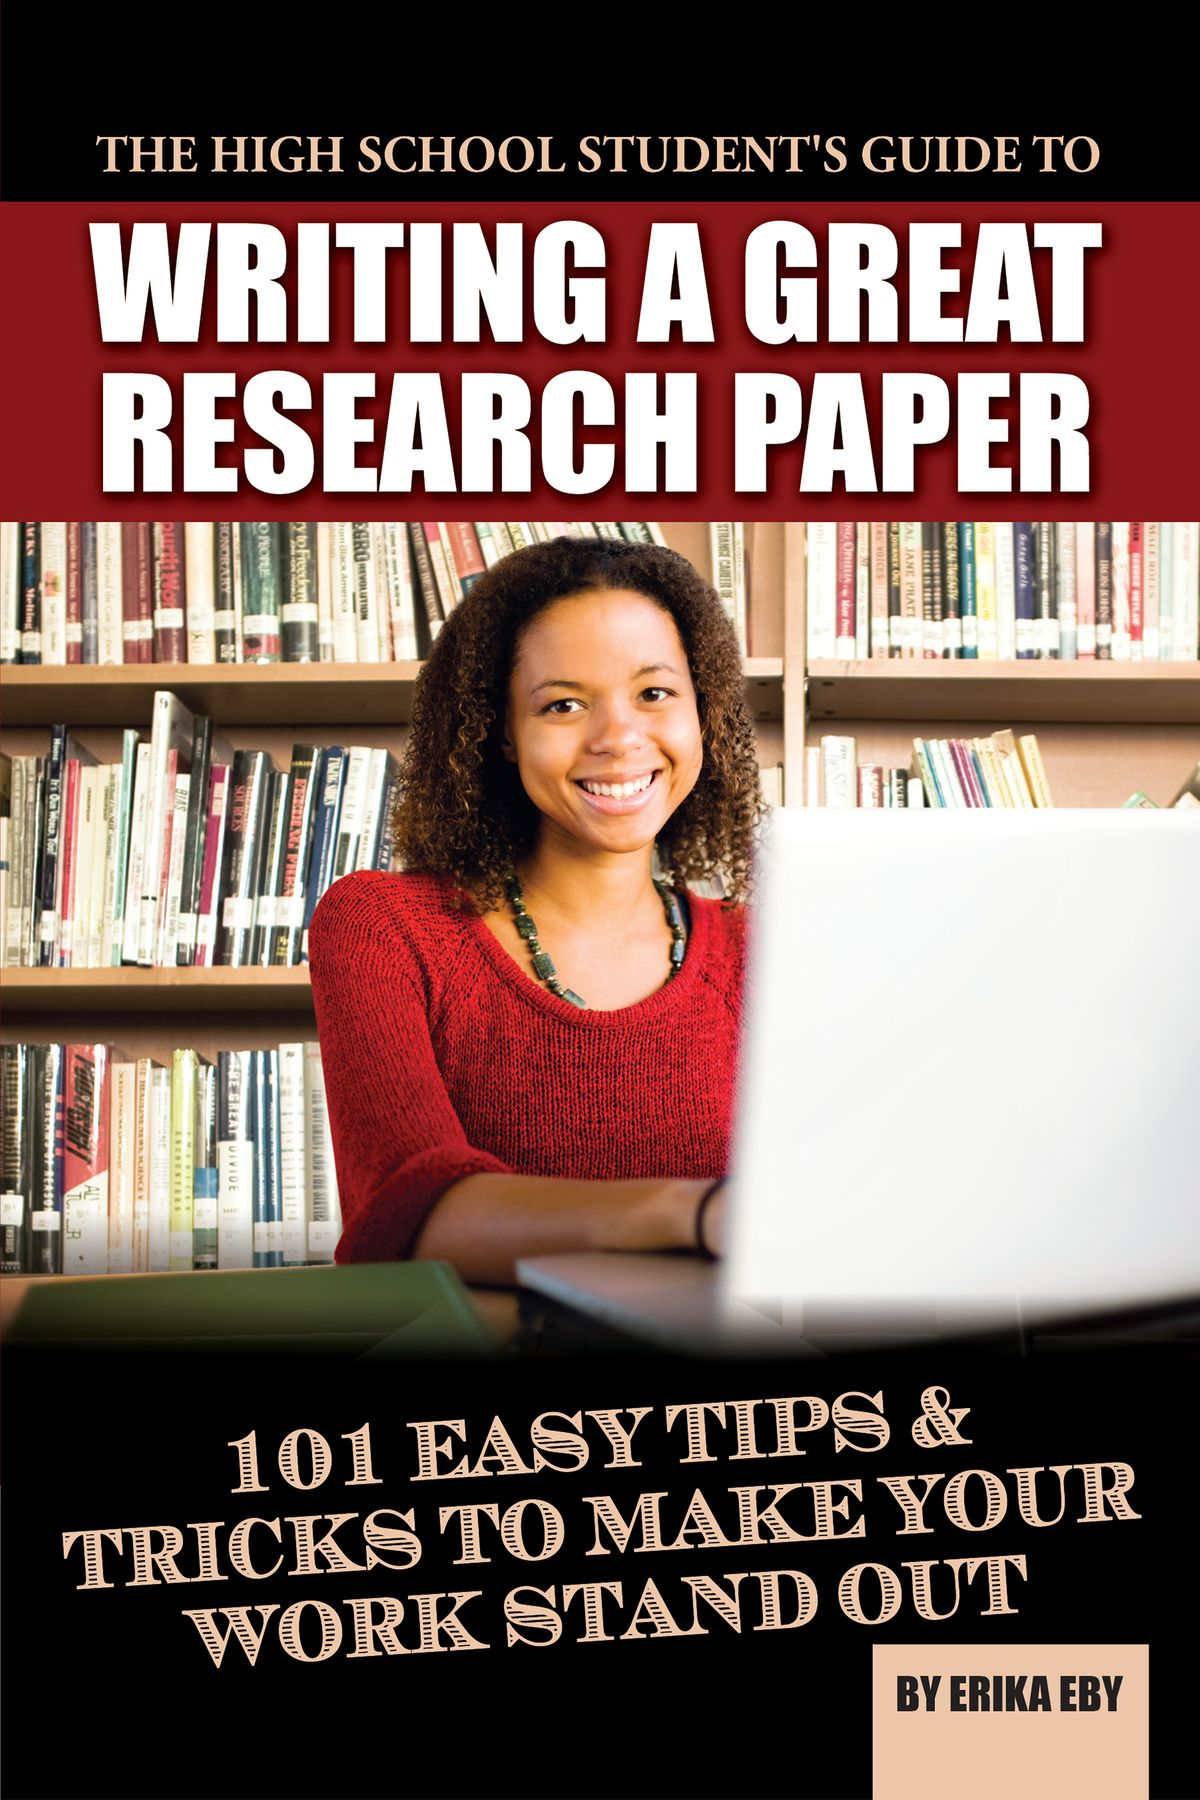 013 The High School Student S Guide To Writing Great Research Paper Easy Tips Tricks Make Your Work Stand Out How Write Best A Book Good On Full